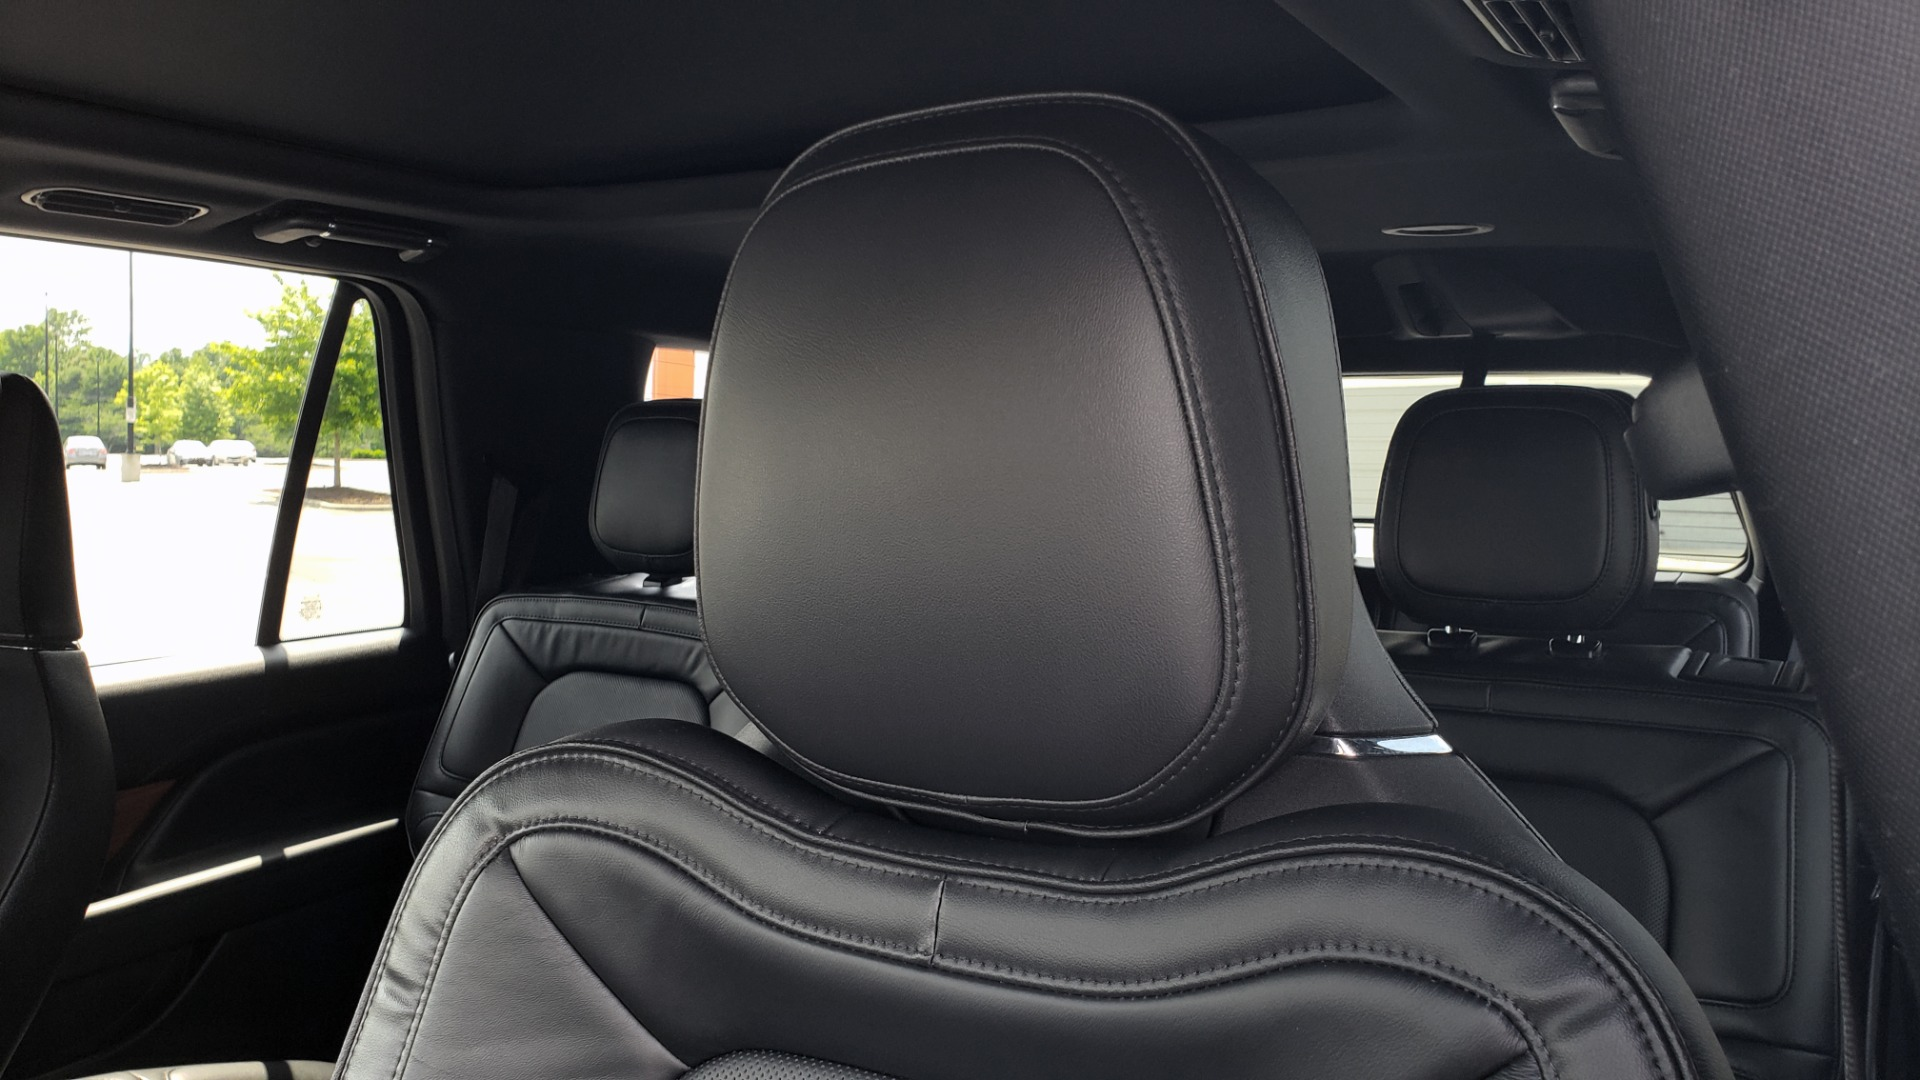 Used 2019 Lincoln NAVIGATOR RESERVE 4X4 / NAV / PANO-ROOF / REVEL ULTIMA AUDIO / 3-ROW / REARVIEW for sale $74,795 at Formula Imports in Charlotte NC 28227 43